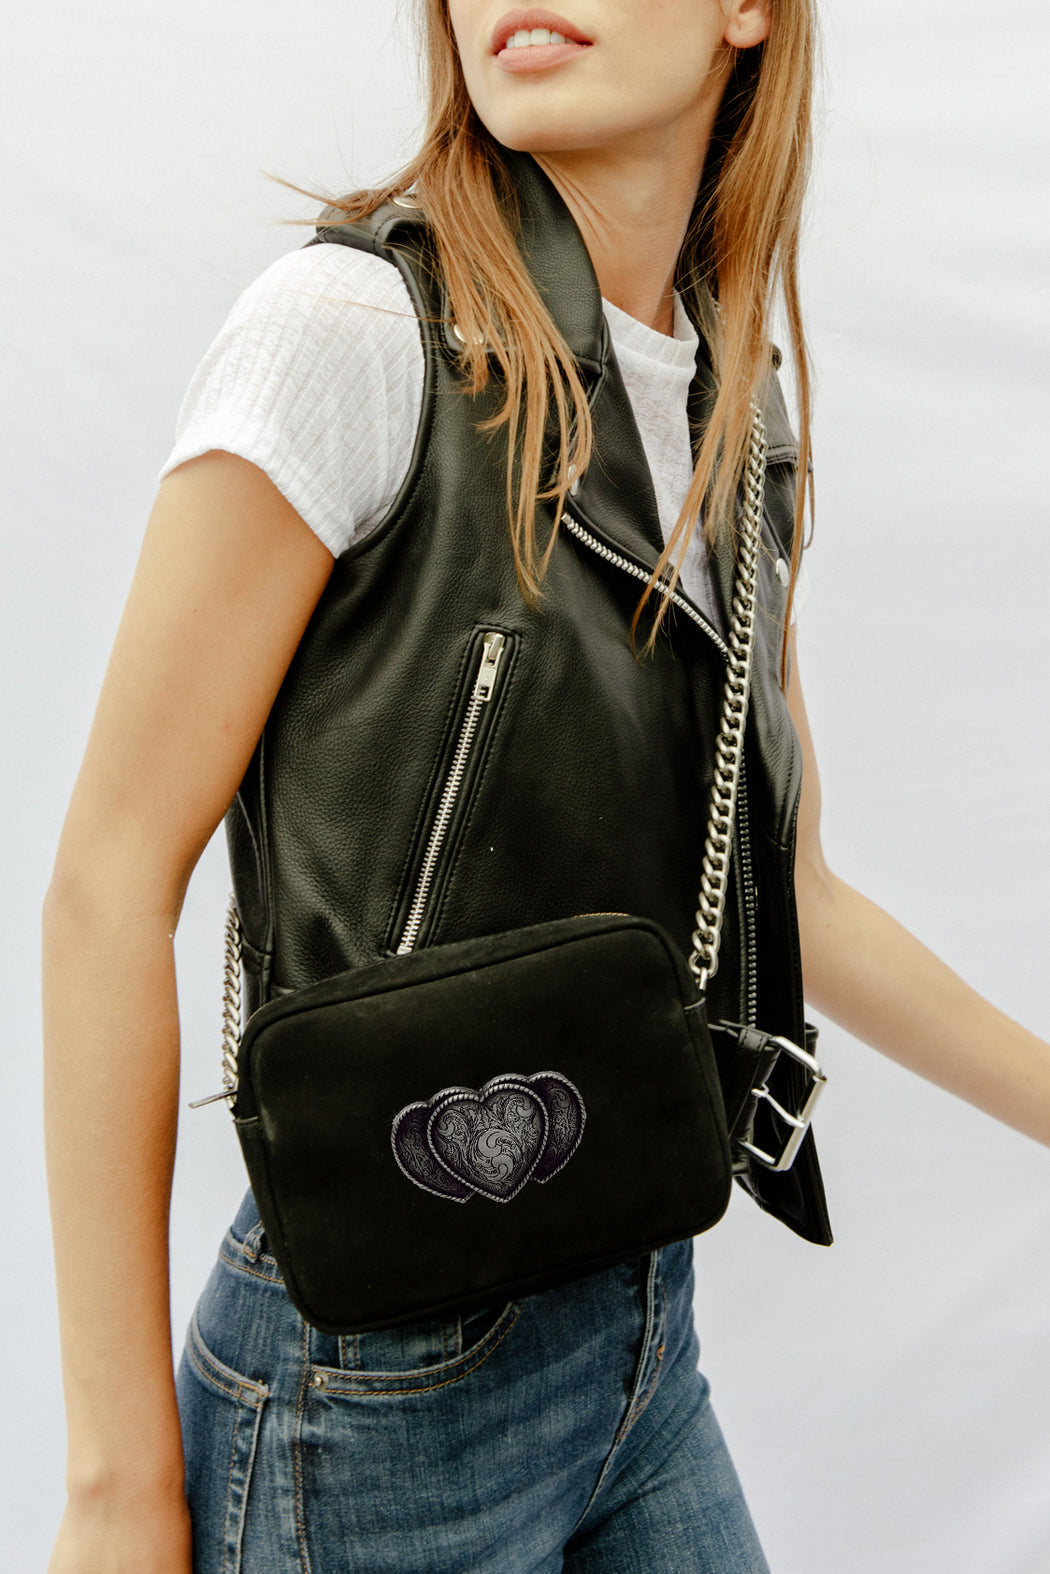 WILD AT HEART VEGAN LEATHER BAG